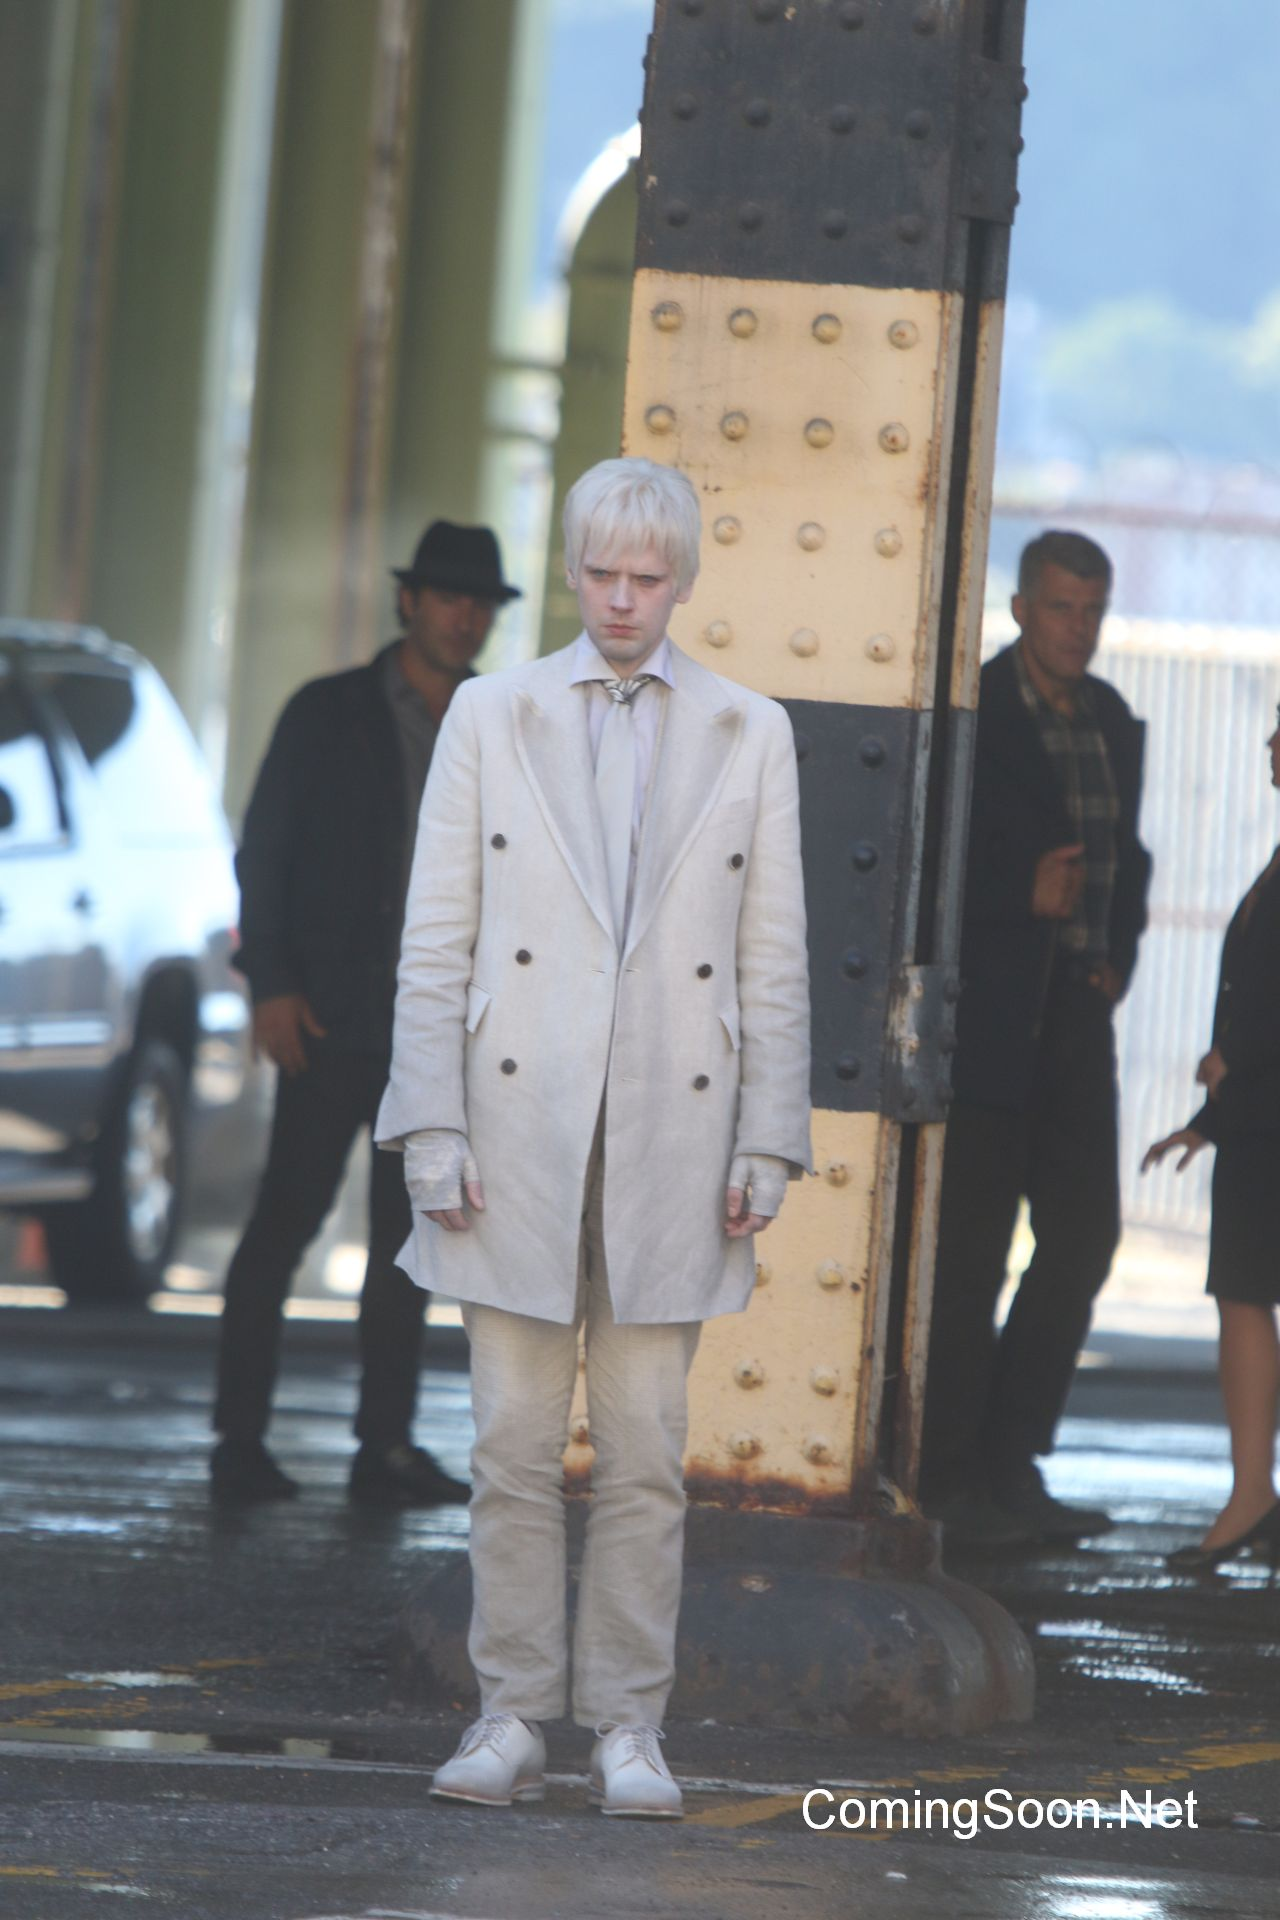 Actors are on set for the filming of 'Gotham' tv showFeaturing: Kieran MulcareWhere: New York City, New York, United StatesWhen: 23 Aug 2016Credit: Macguyver/WENN.com